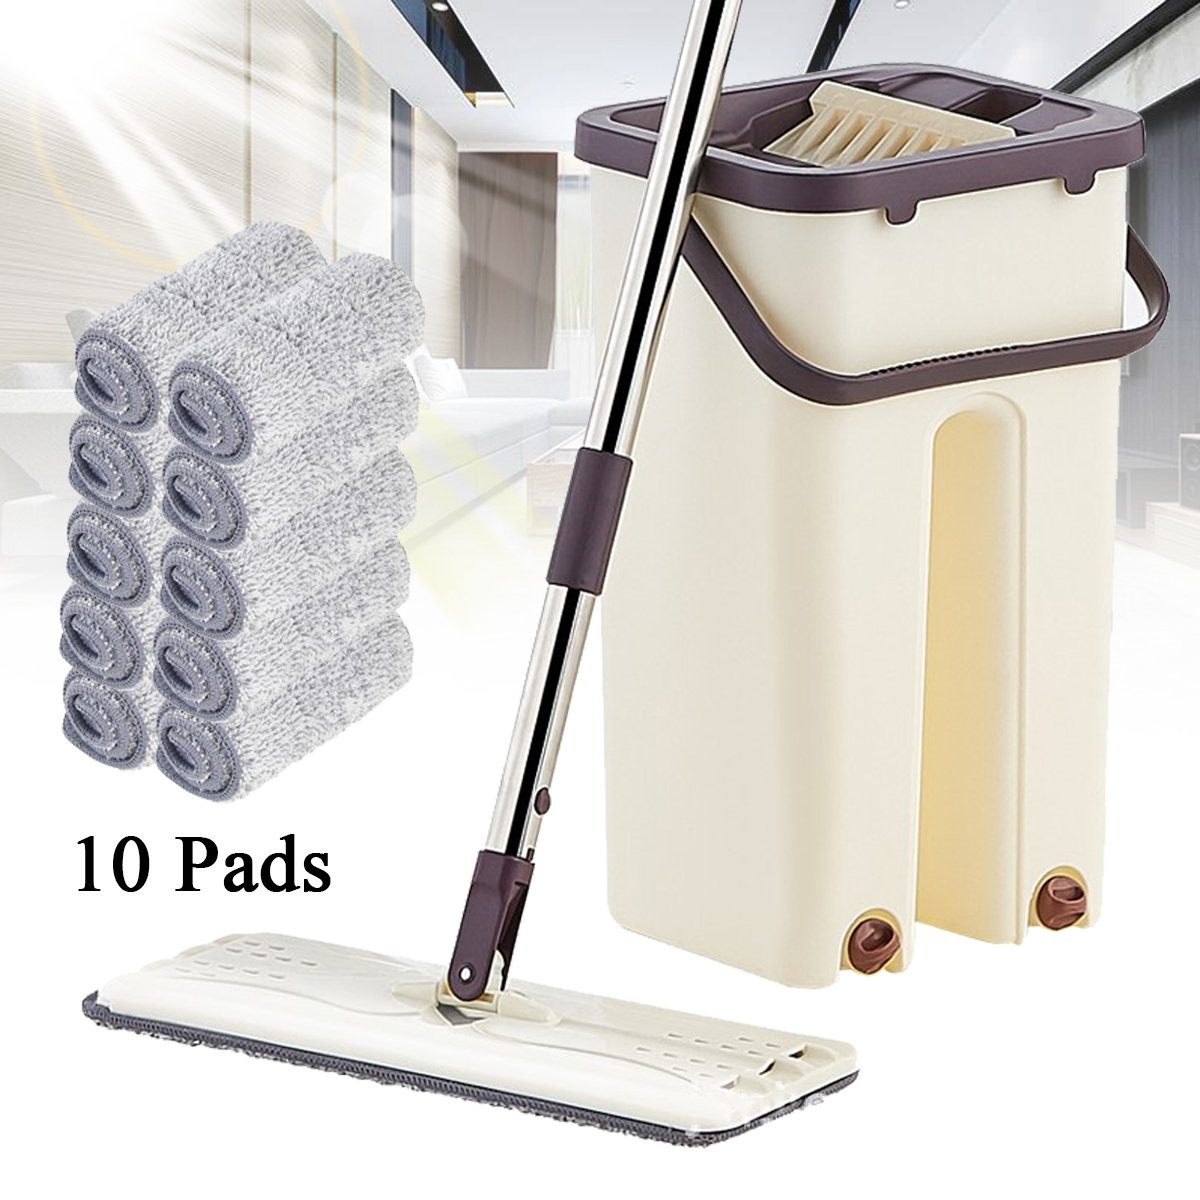 Flat Squeeze Mop and Bucket Hand Free Wringing Floor Cleaning Mop Wet or Dry Usage Magic